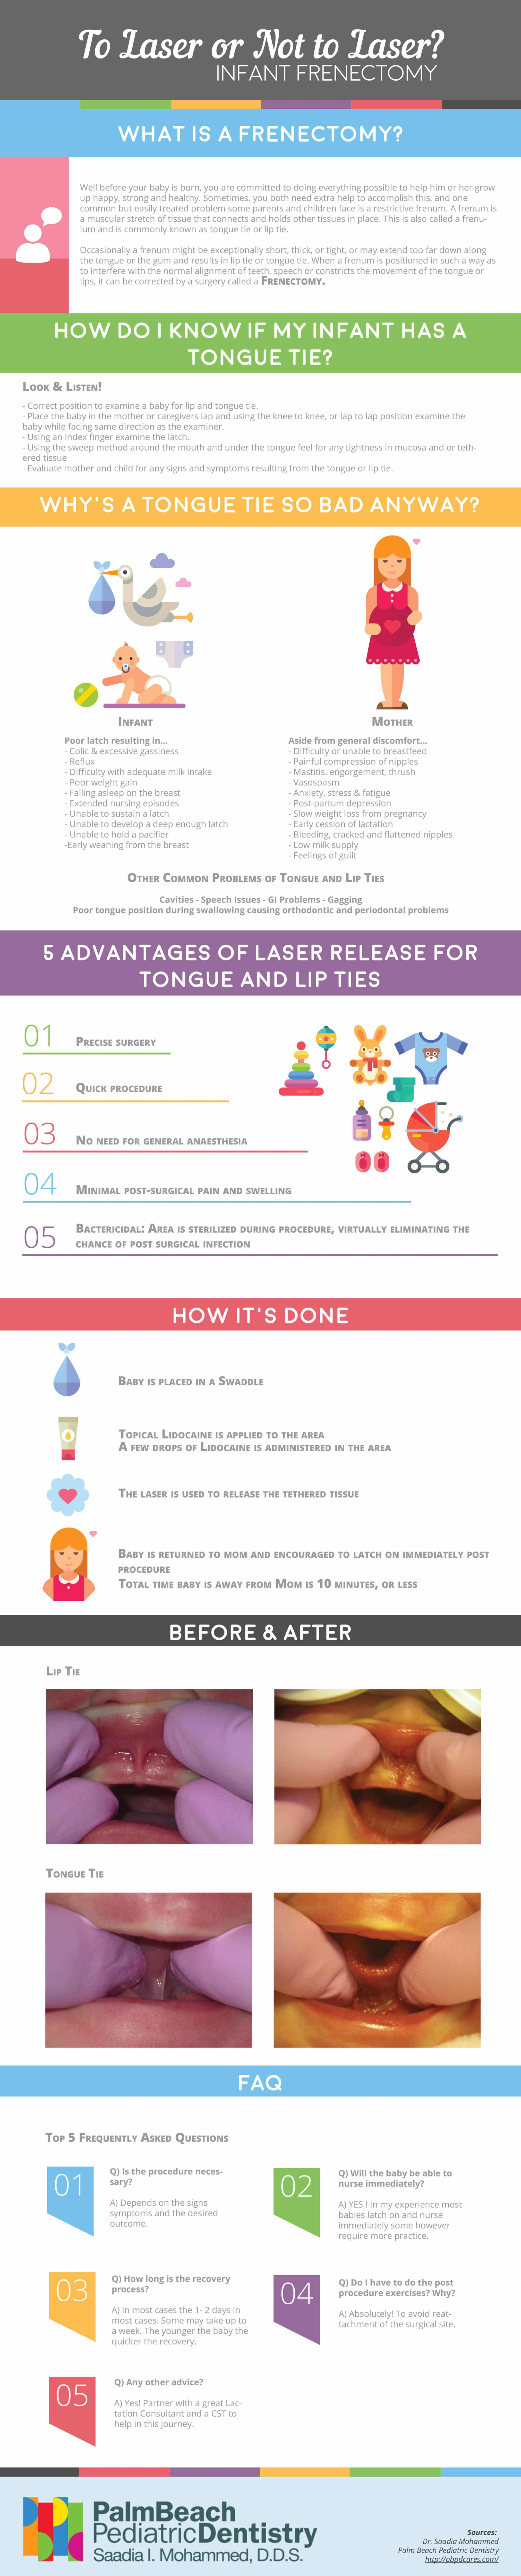 Palm Beach Pediatric Dentistry, PA - Dr. Saadia I. Mohammed, DDS - Frenectomy Infographic